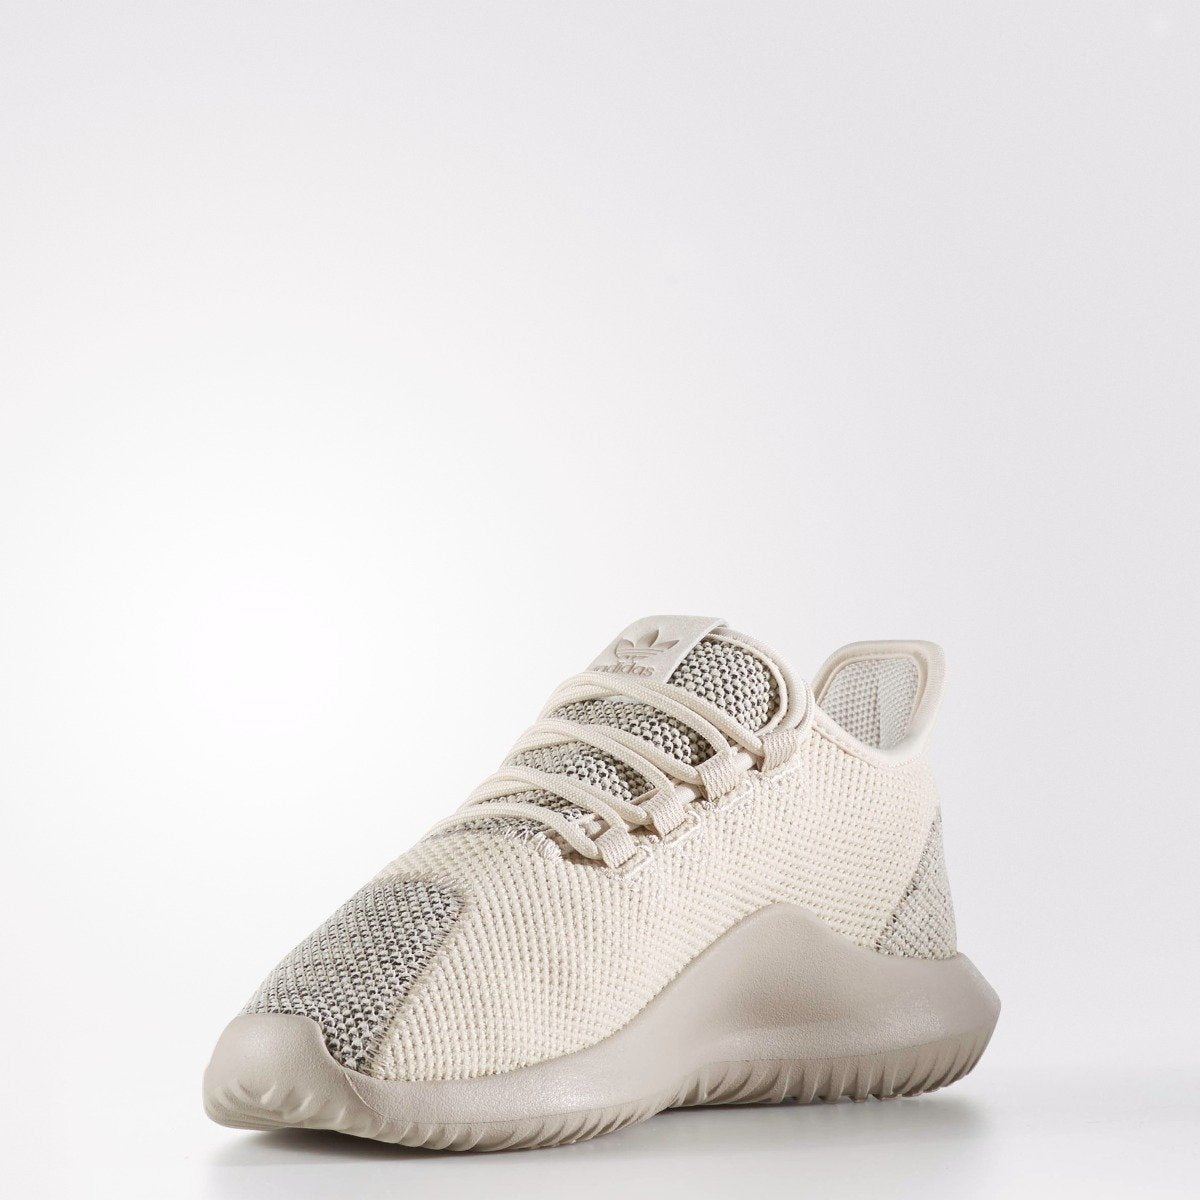 sports shoes 1d92c 14544 Kid's adidas Originals Tubular Shadow Shoes Clear Brown ...